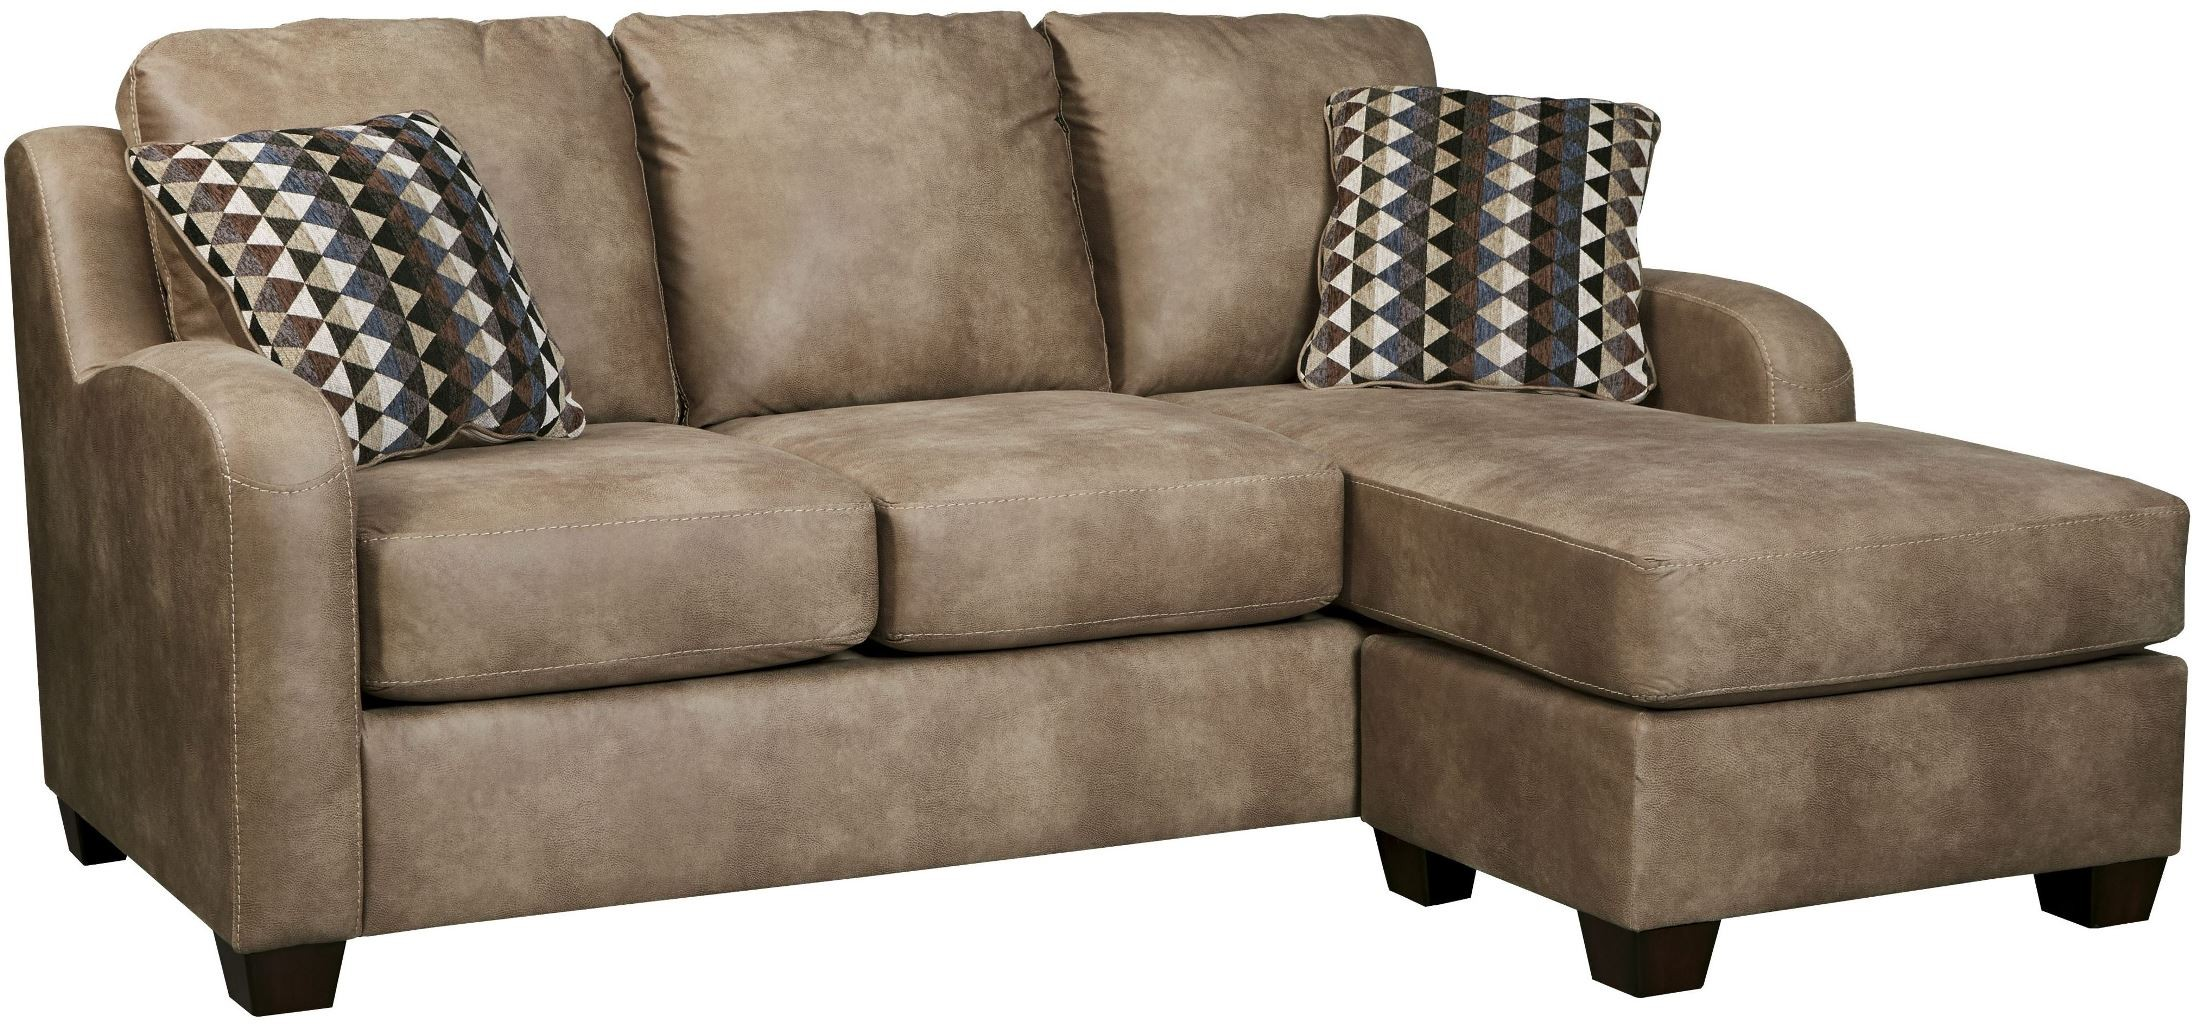 Alturo dune sofa chaise from ashley 6000318 coleman for Ashley circa taupe sofa chaise